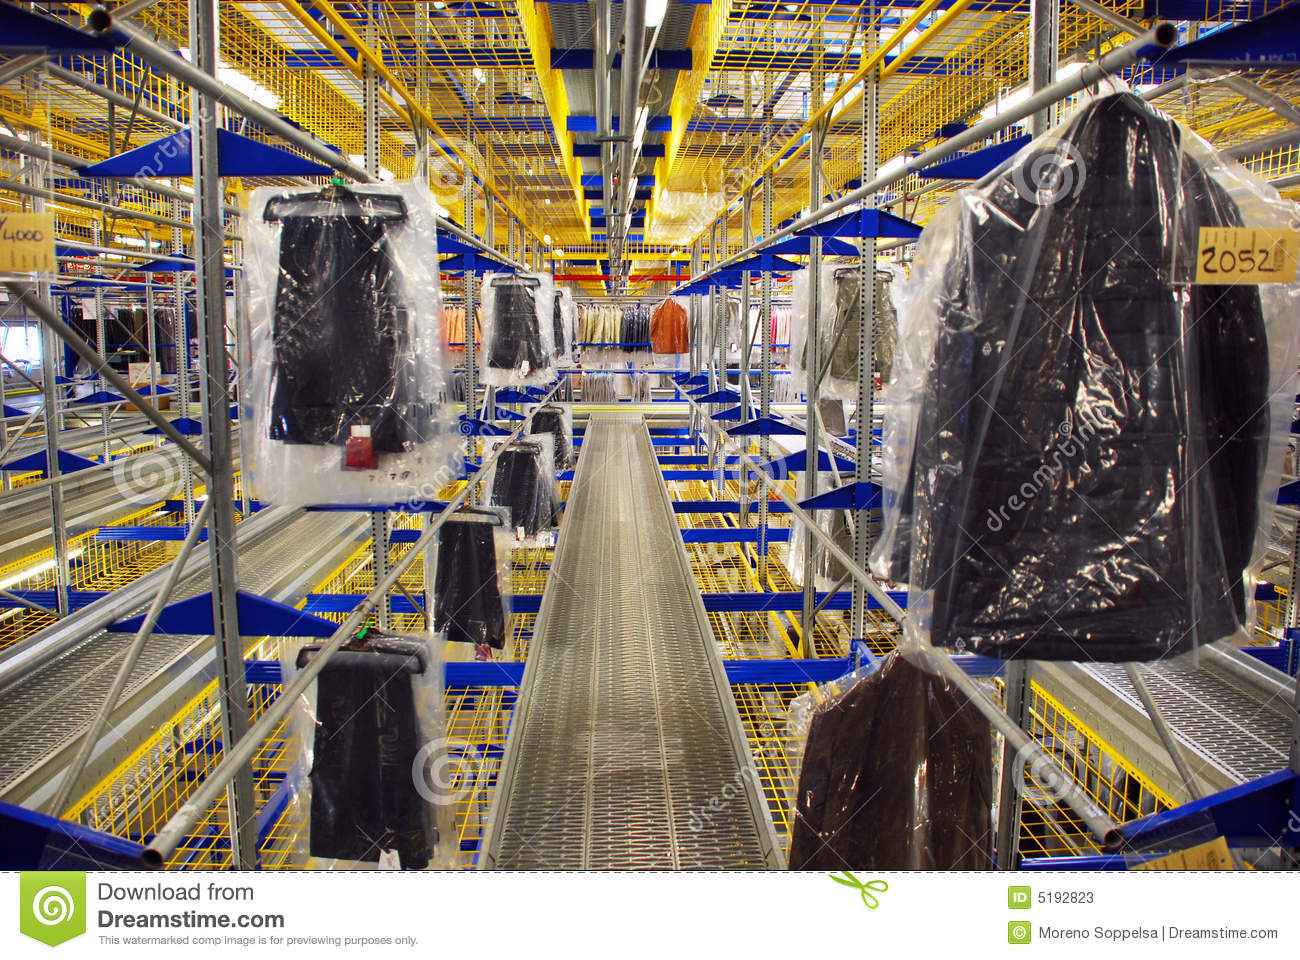 Automatic Clothing Warehouse Stock Image - Image: 5192823